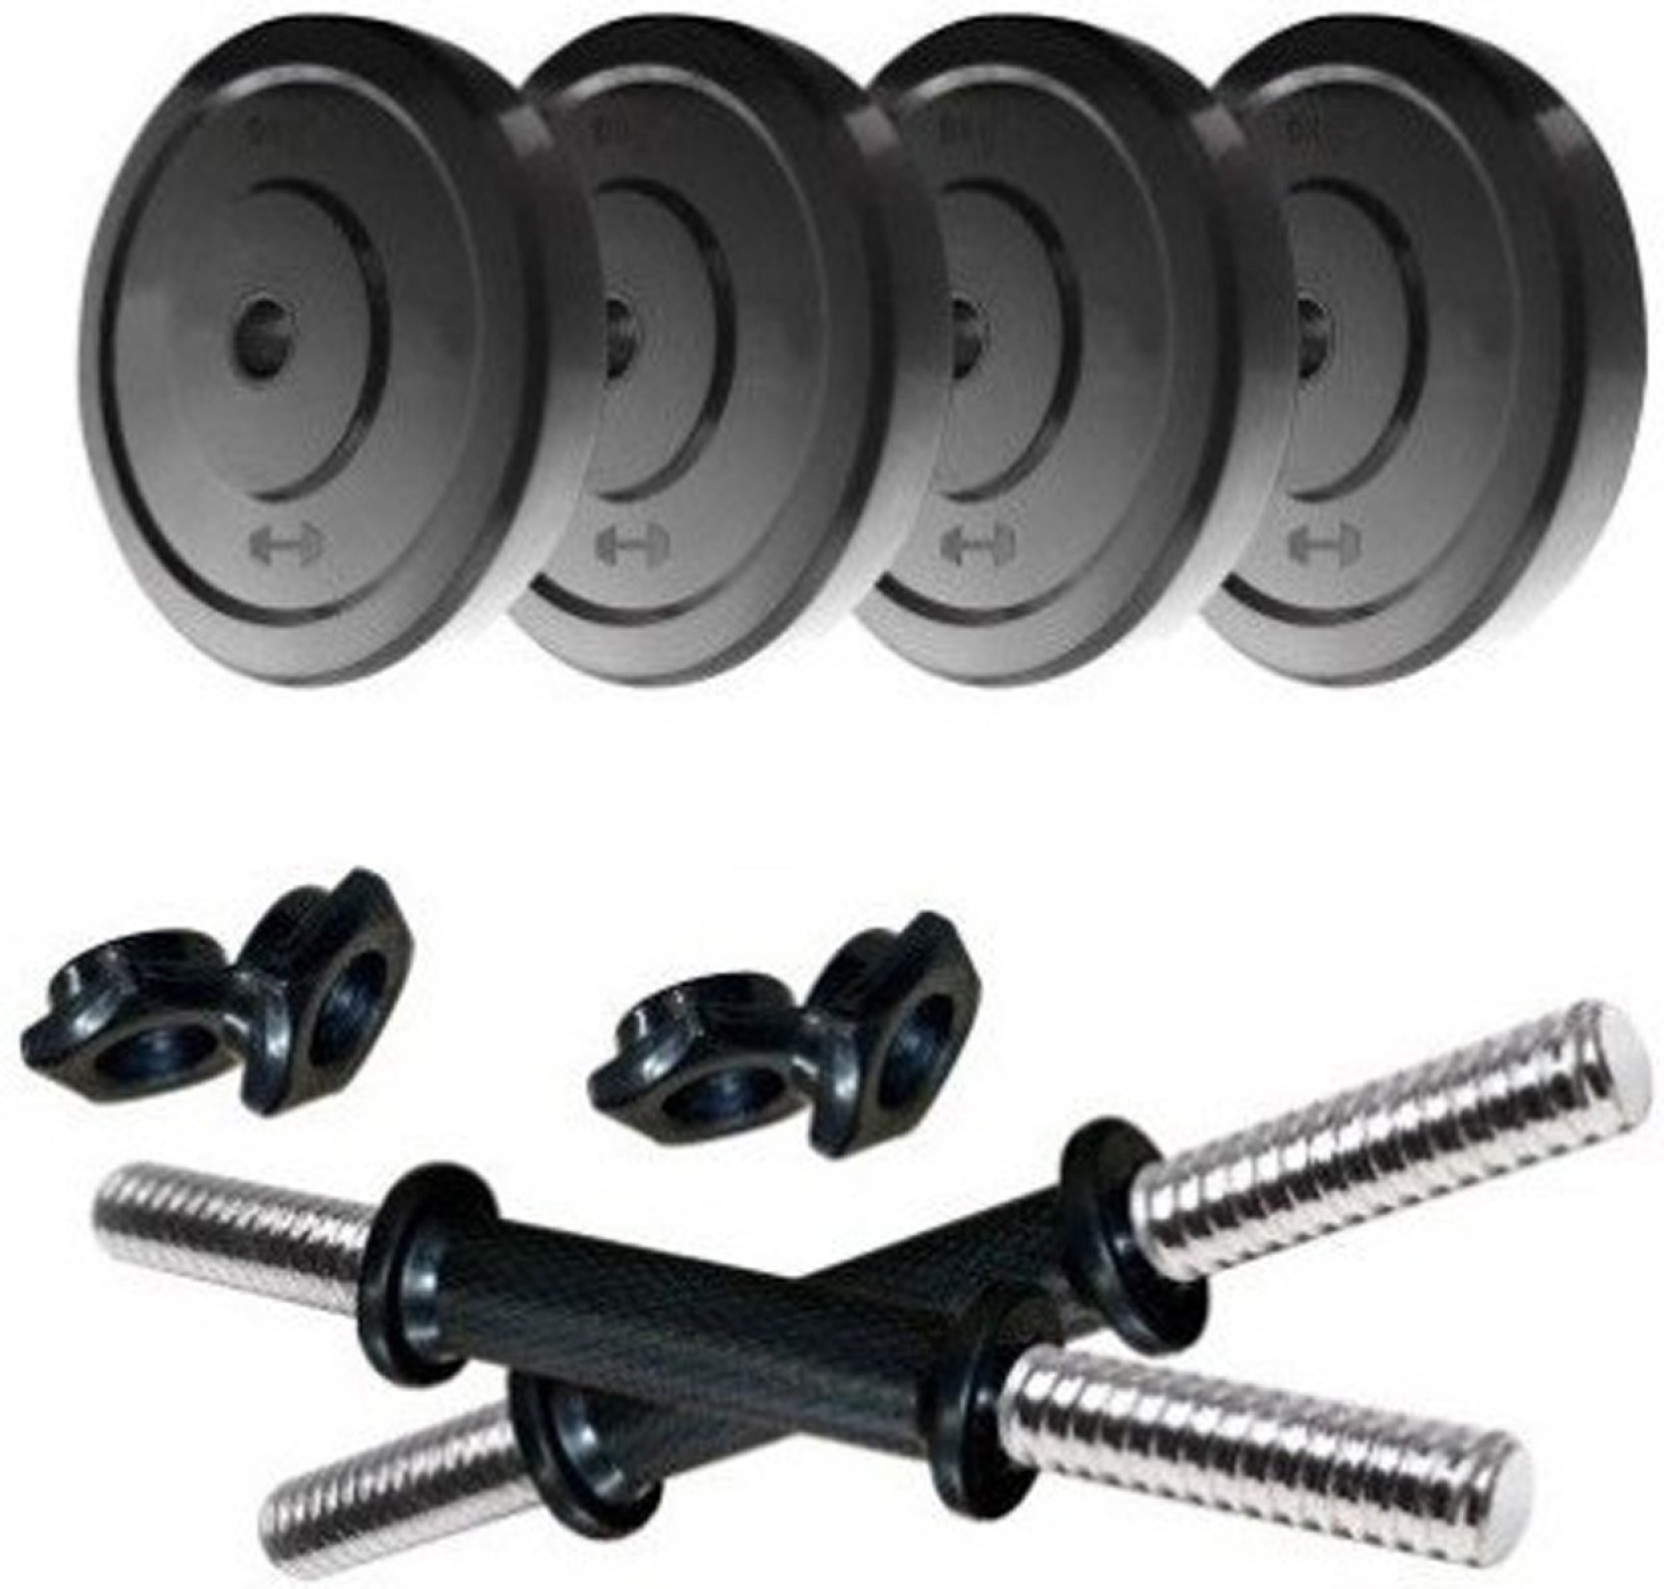 â ؟؟؟؟ Adjustable dumbbellâ ؟؟؟؟ ç ؟؟؟؟ å ؟؟ ؟؟؟ç ؟؟؟؟ æ ؟؟؟؟ ç ¢ ç »؟؟ æ ؟؟؟؟